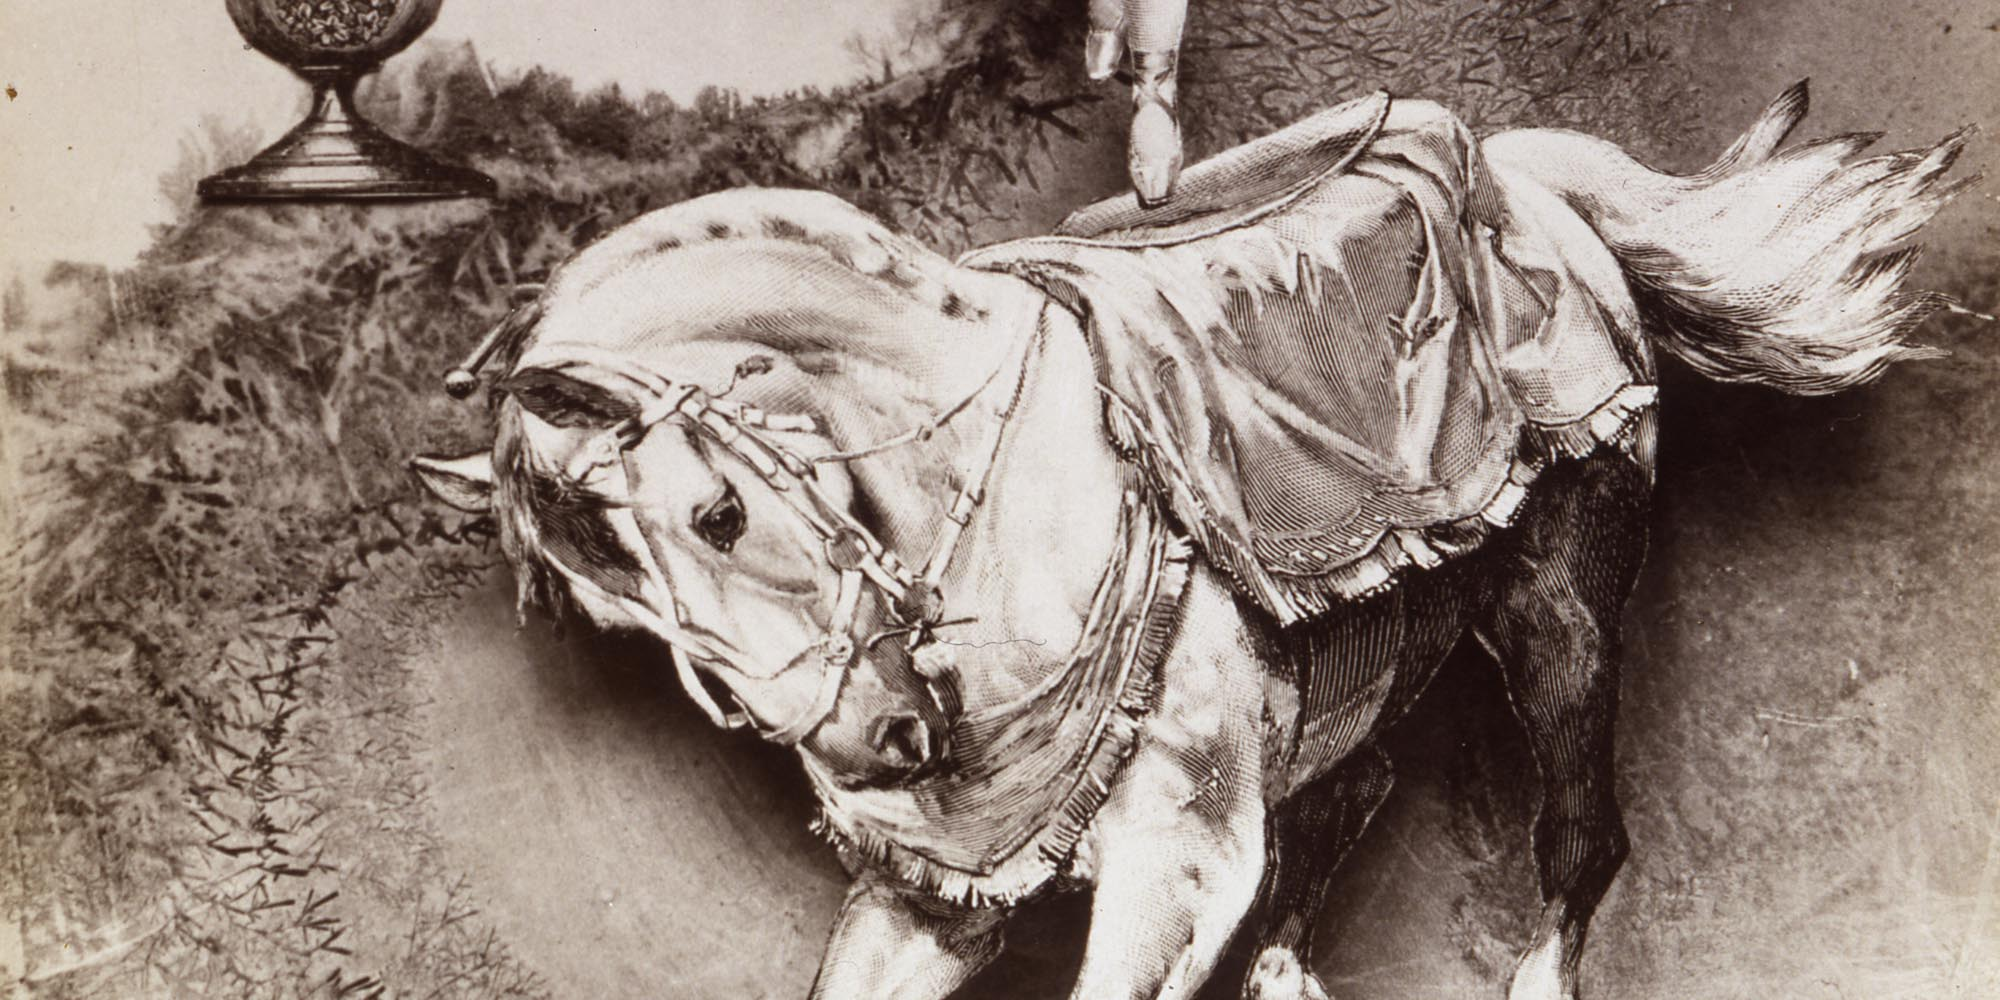 Frantisek Vobecky: Photomontages Within the Context of Czech Avant-Garde